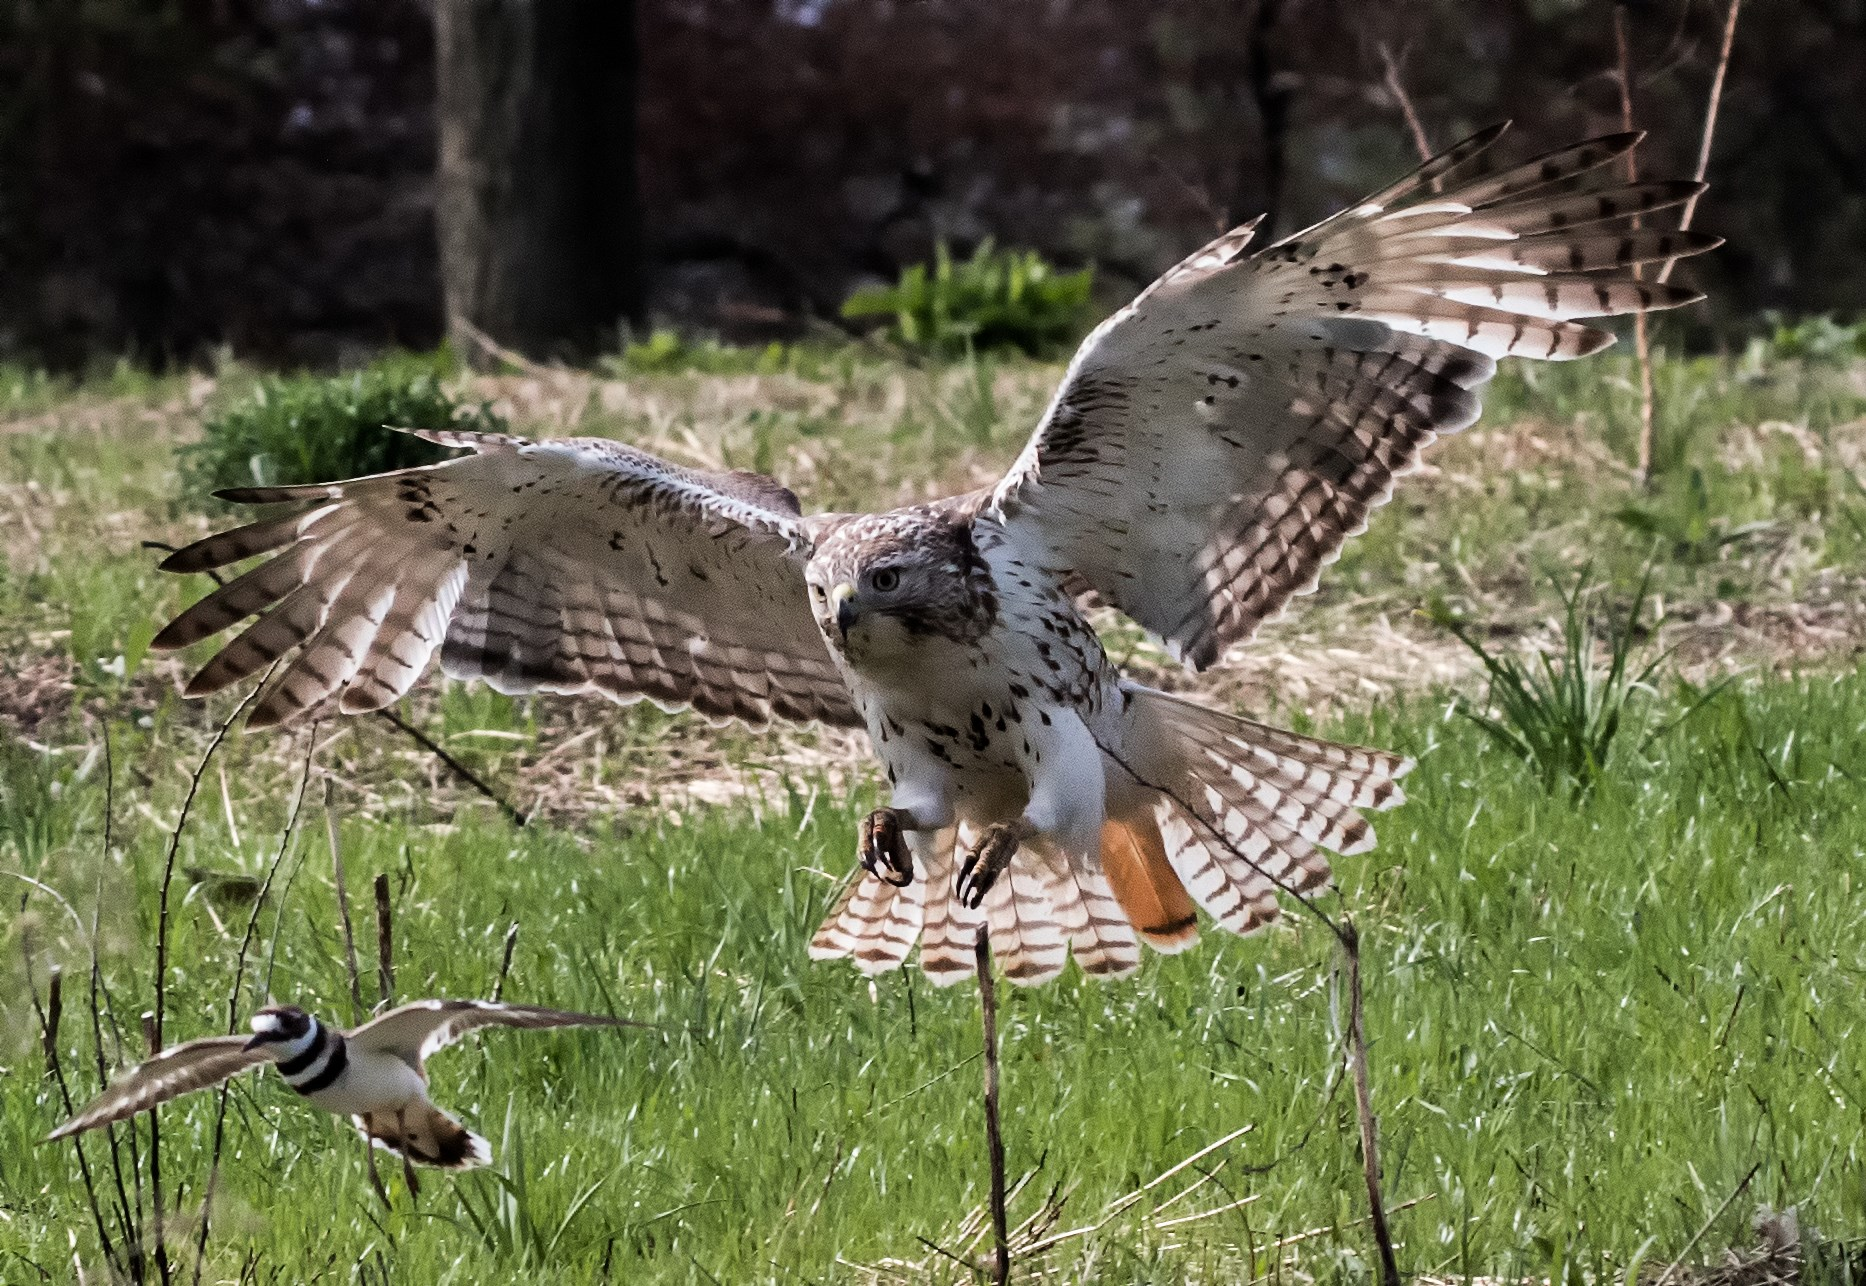 Fifth Place Honorable Mention Red-tailed Hawk pursuing Killdeer. Photo by Demayne Murphy.